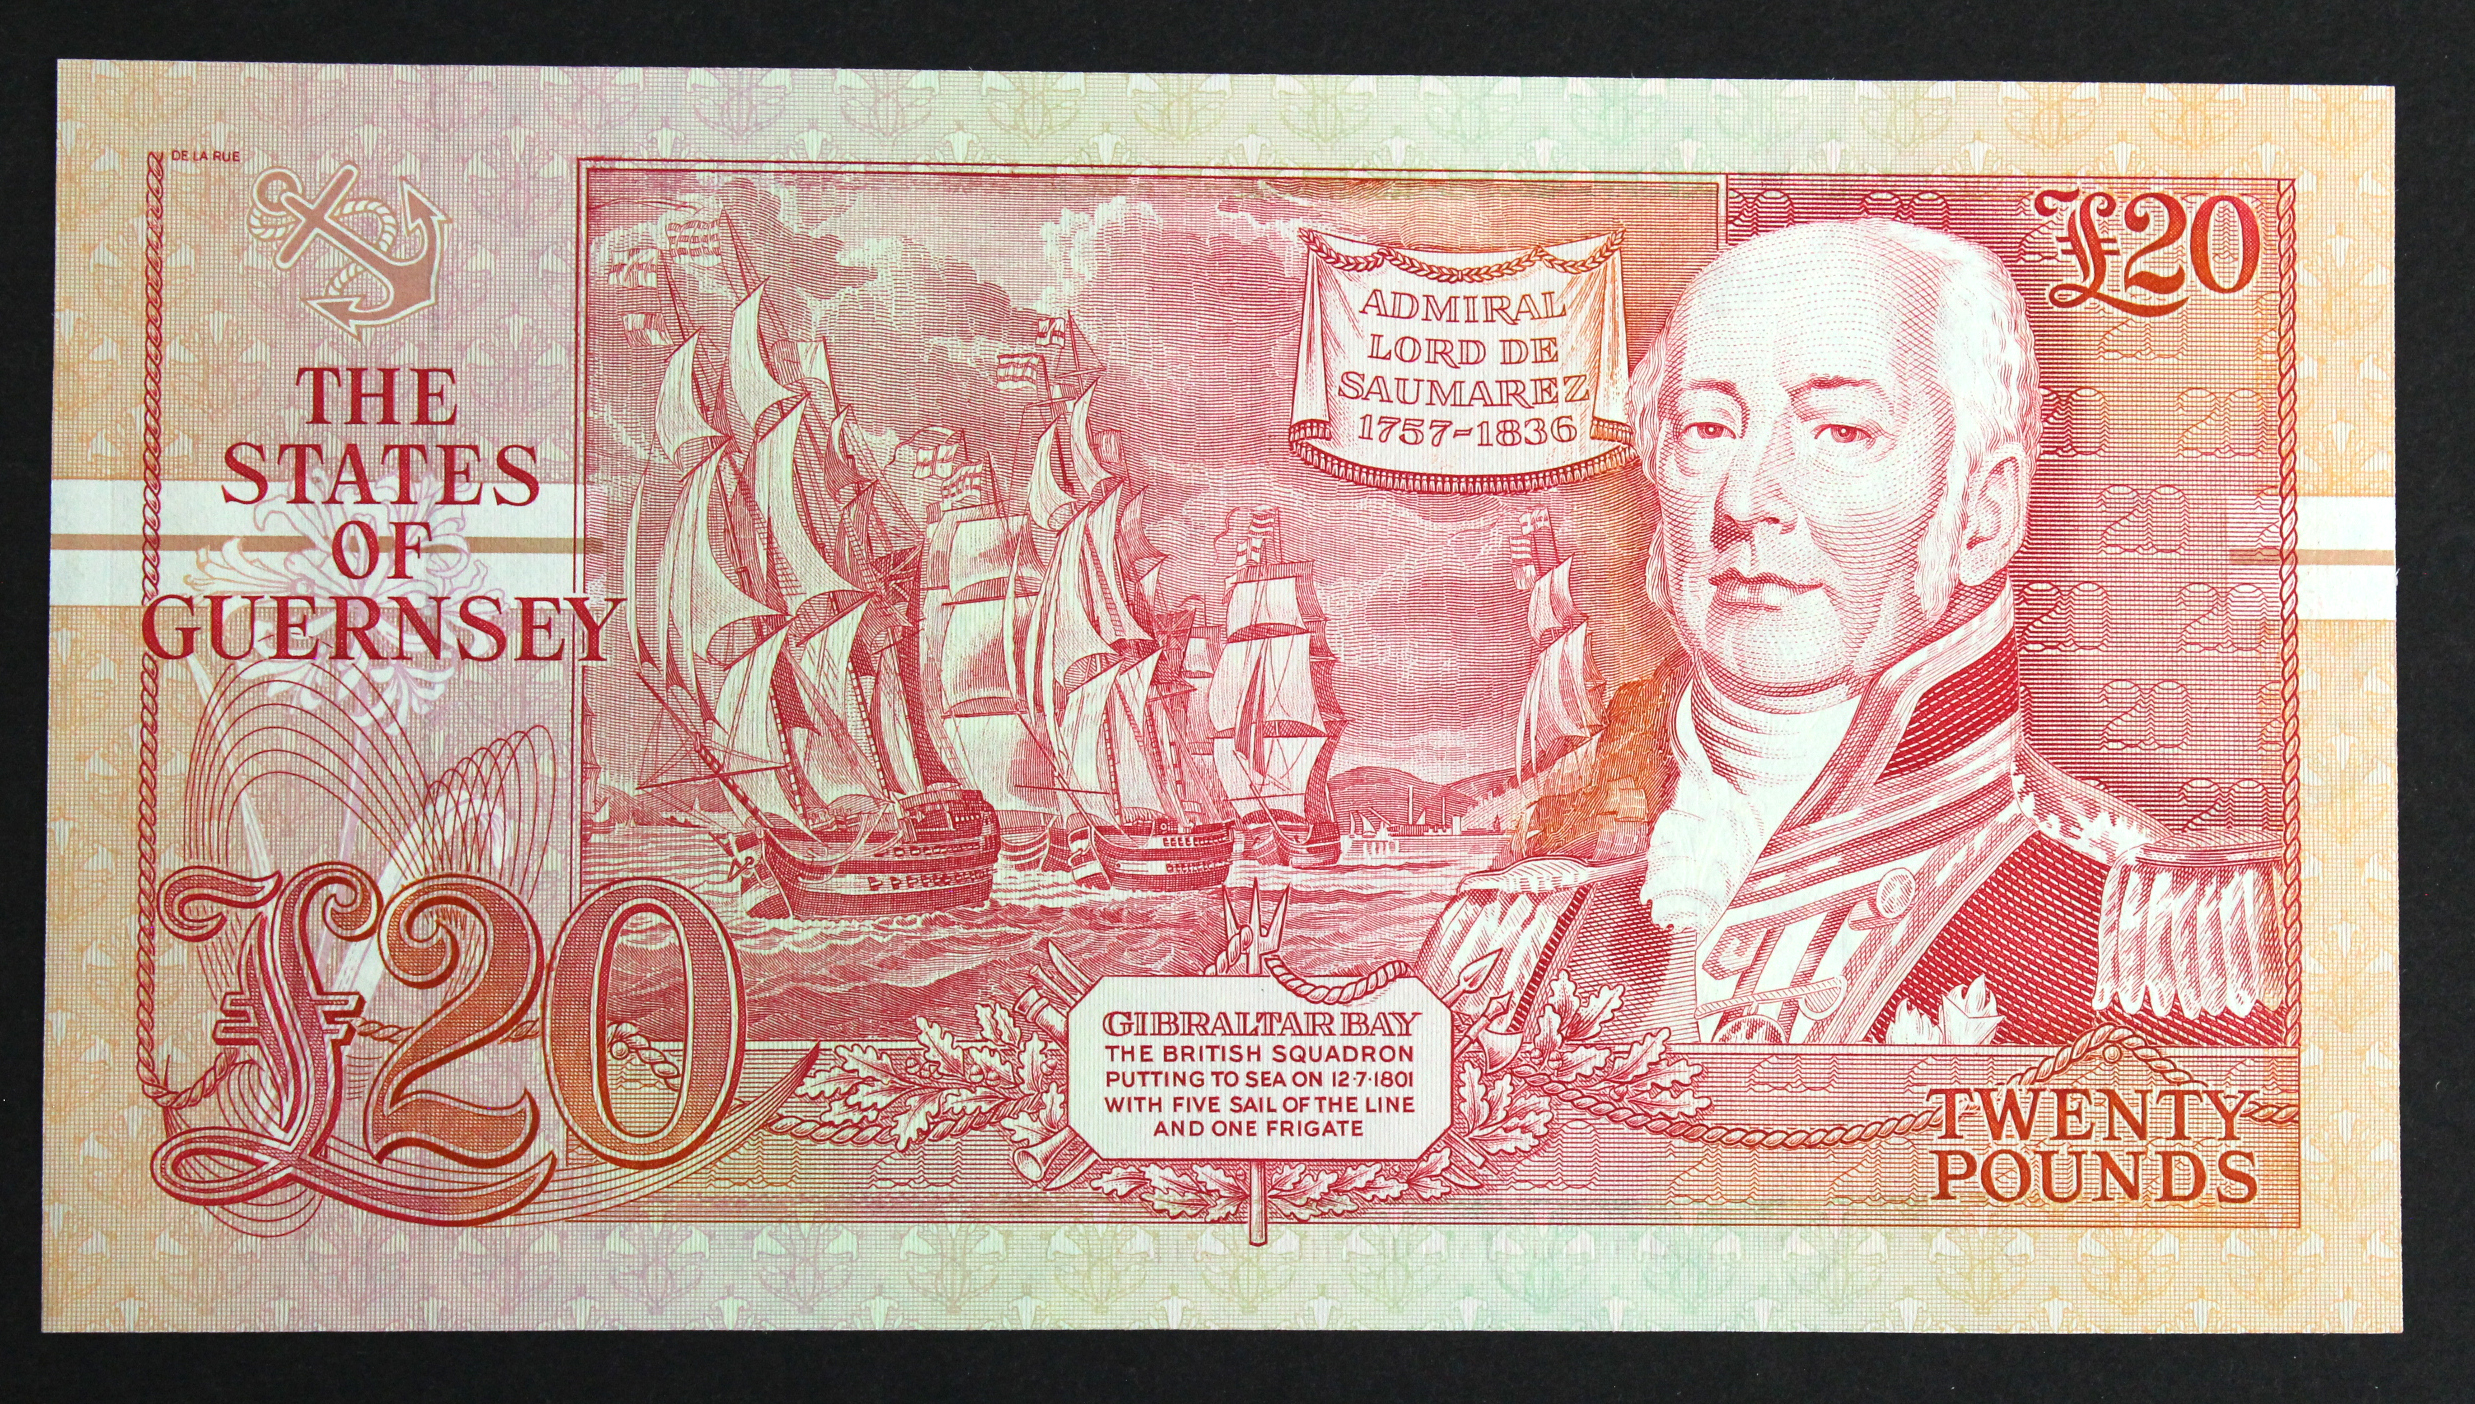 Guernsey 20 Pounds issued 1991 - 1995, signed D.P. Trestain, VERY HIGH serial B999957 (TBB B160b, - Image 2 of 2